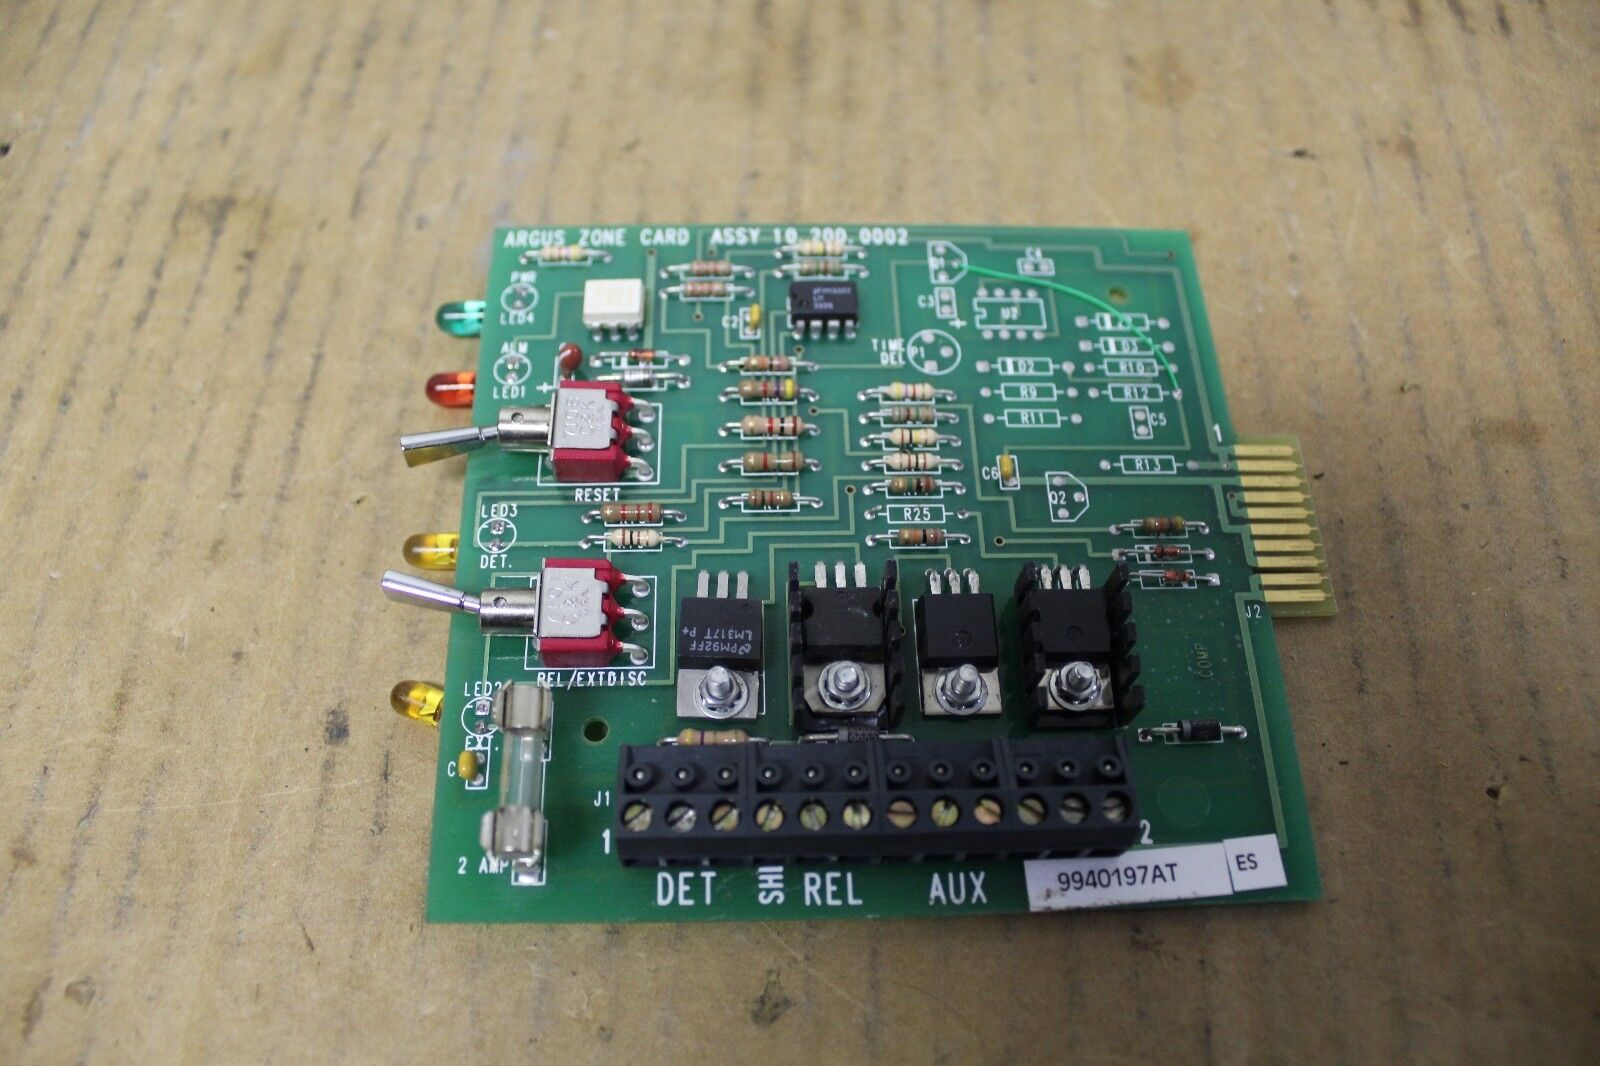 ARGUS ZONE CIRCUIT BOARD CARD 10.200.0002 10-200-0002 102000002